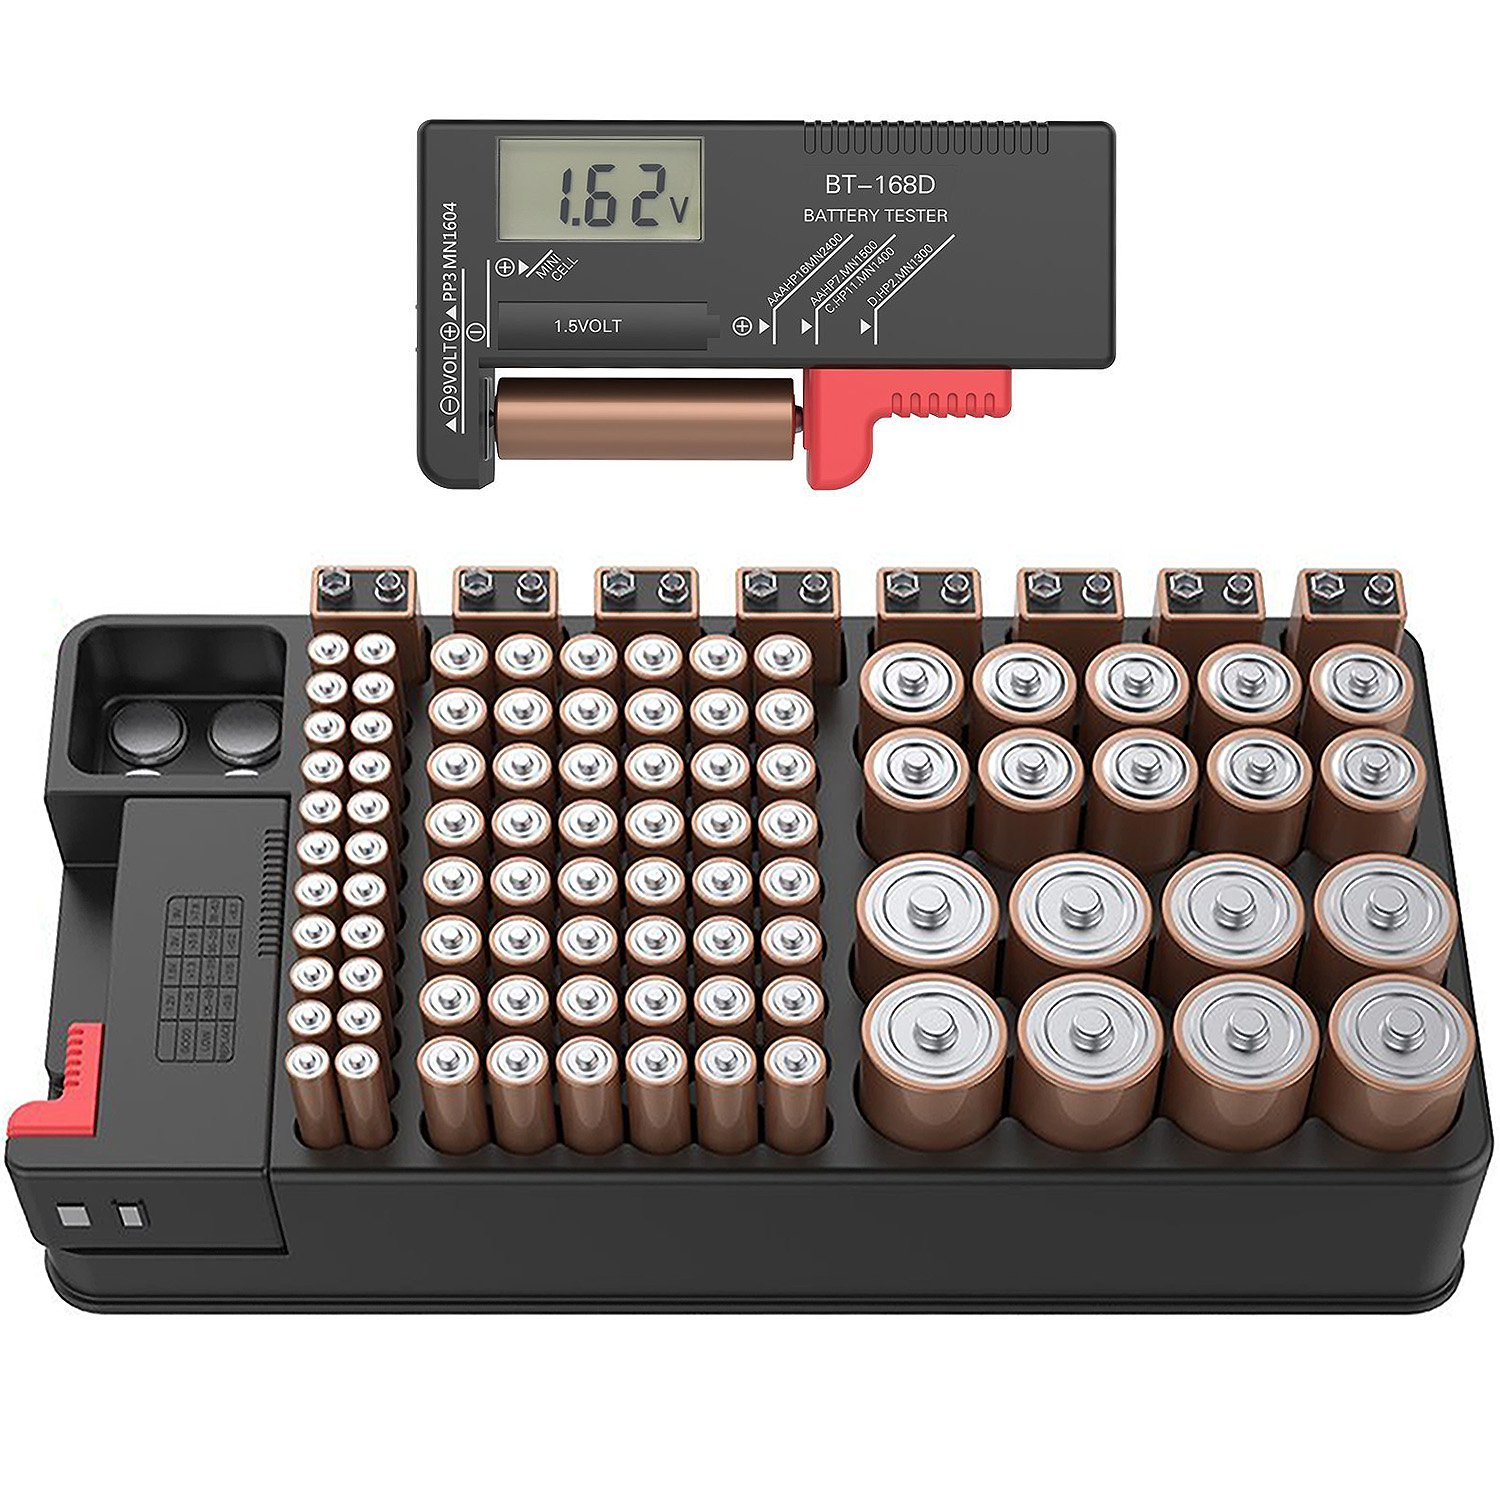 Battery Organizer Storage case with Tester can Hold 110 Battery Various Sizes for AAA, AA, 9V, C and D Size and Digital Battery Tester by ABUNRO